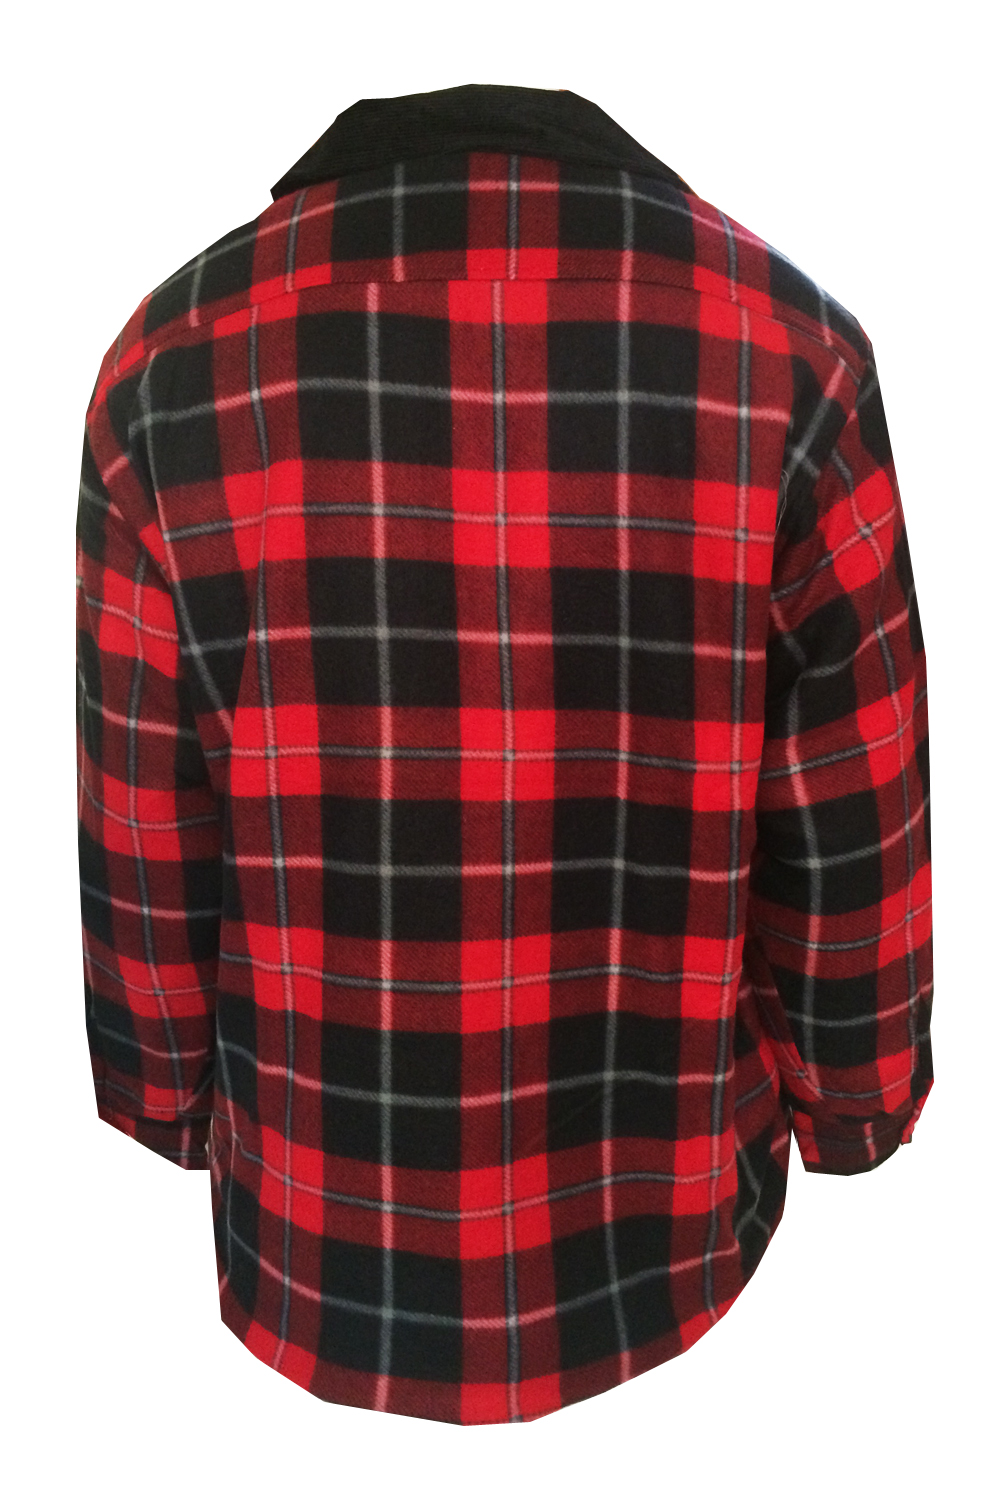 Mens Lumberjack Fleece Jacket Bruno Galli Extra Thick Padded ...